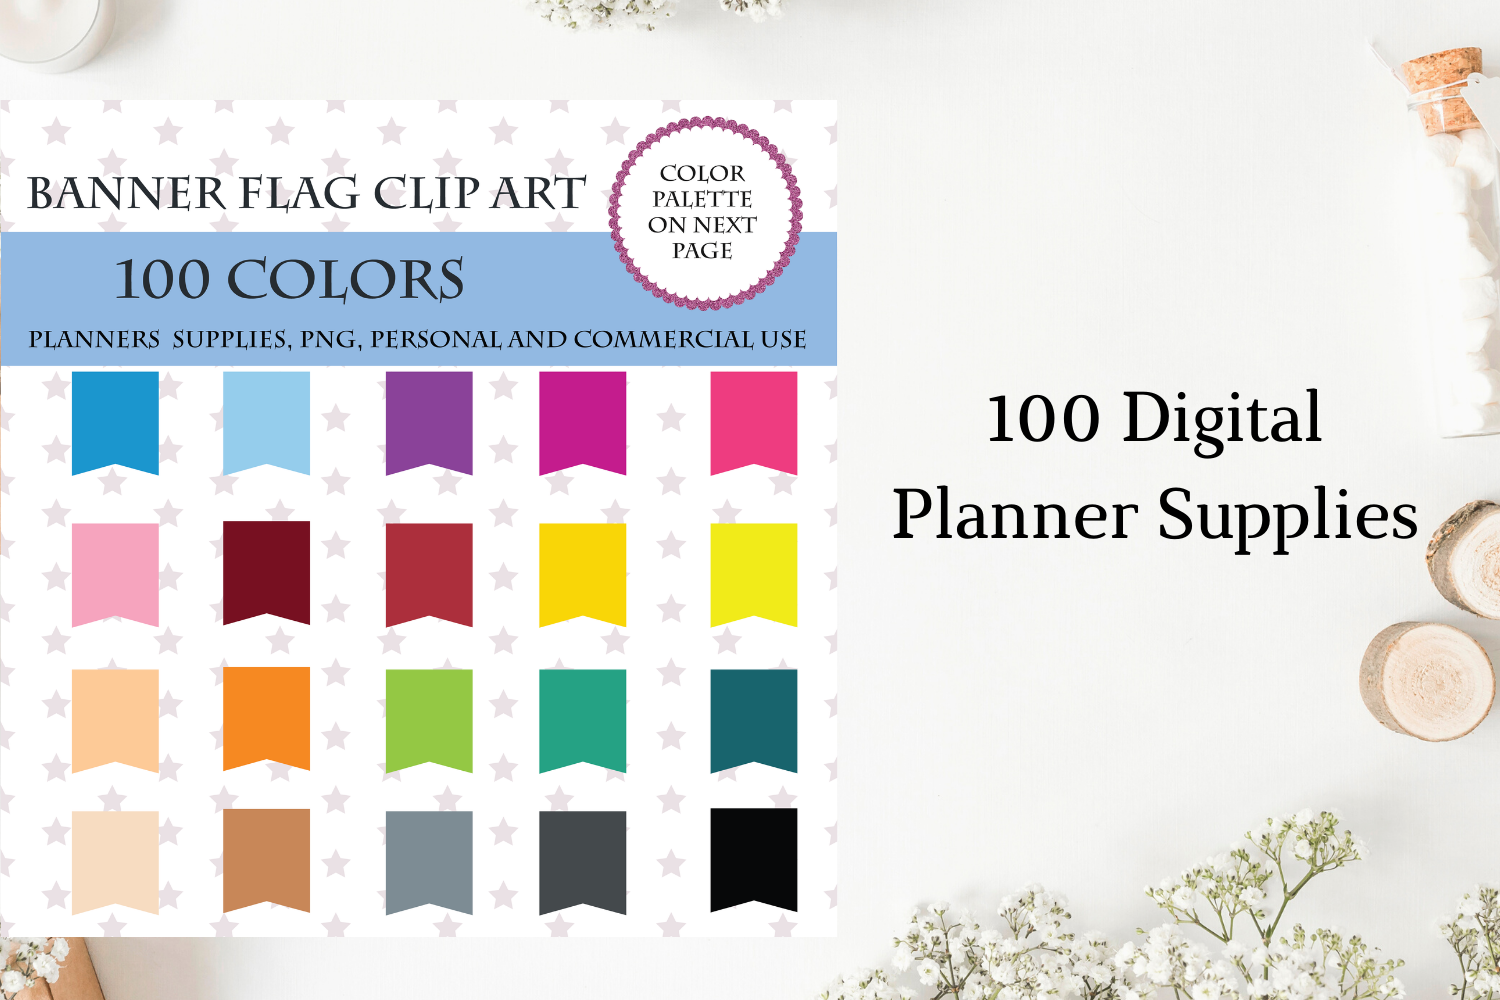 100 Banners Flag Clipart Scrapbooking Graphic By Aneta Design Creative Fabrica